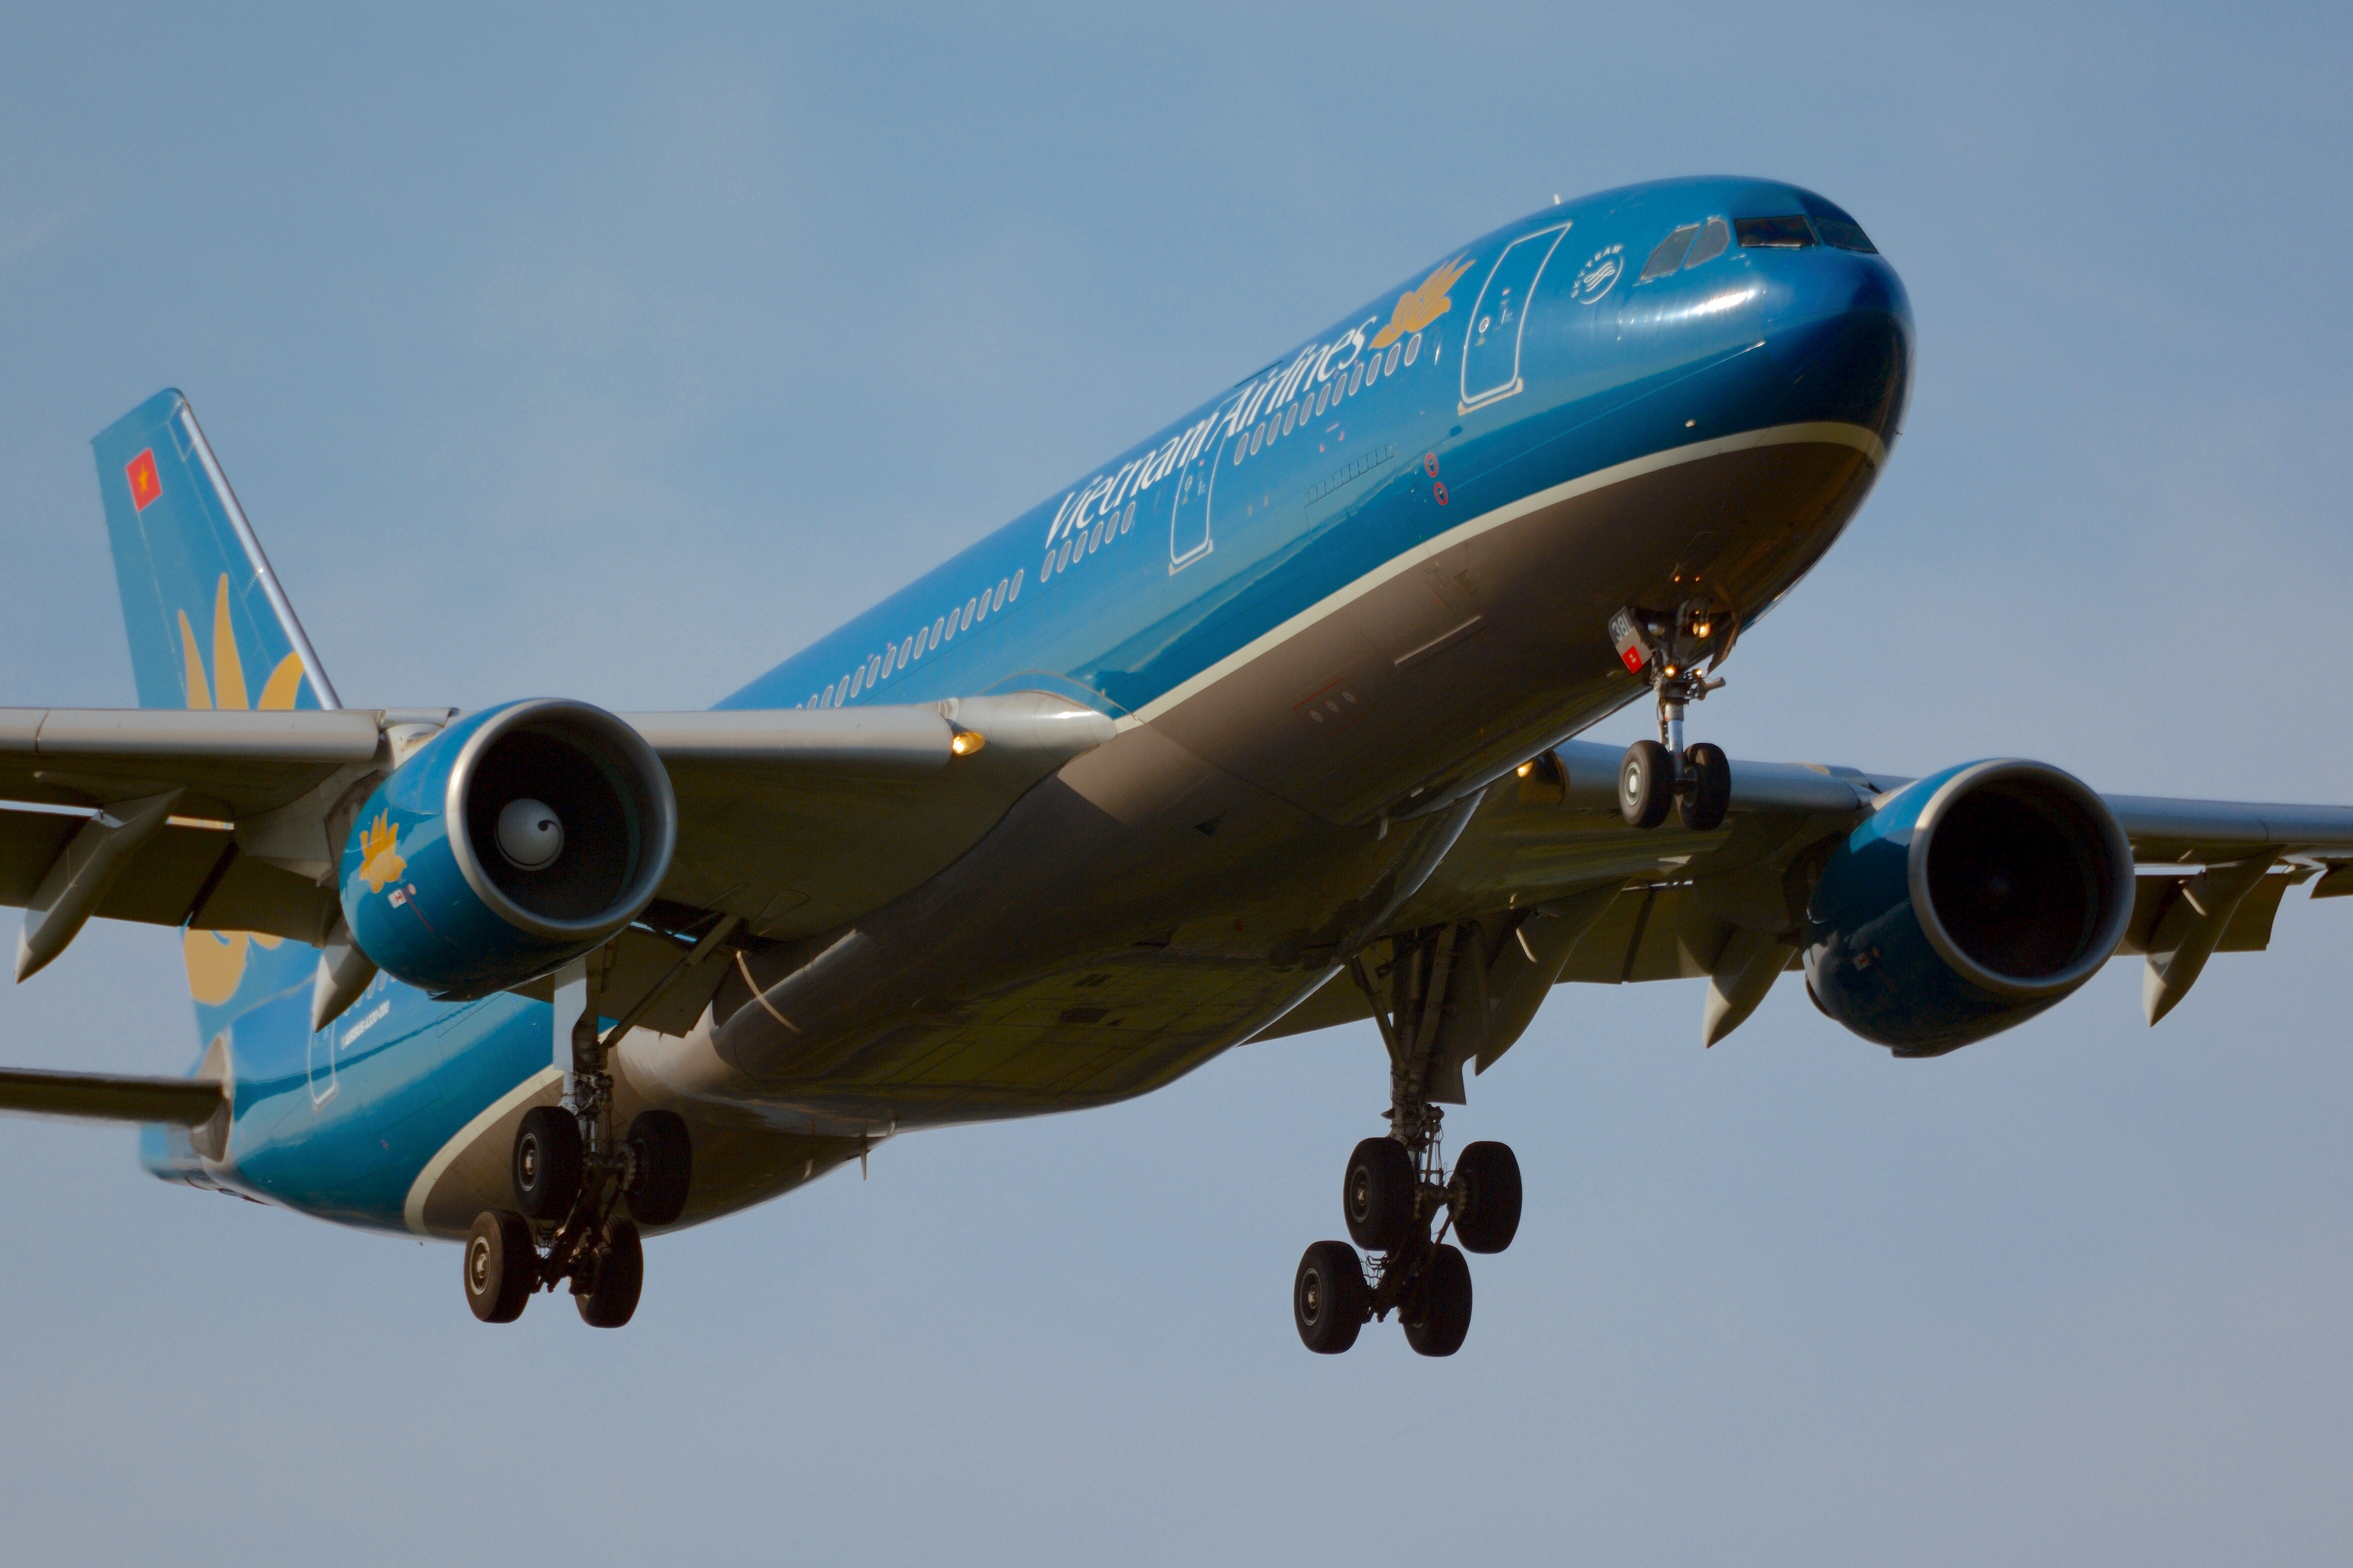 File:Vietnam Airlines Airbus A330-200 VN-A381 NRT